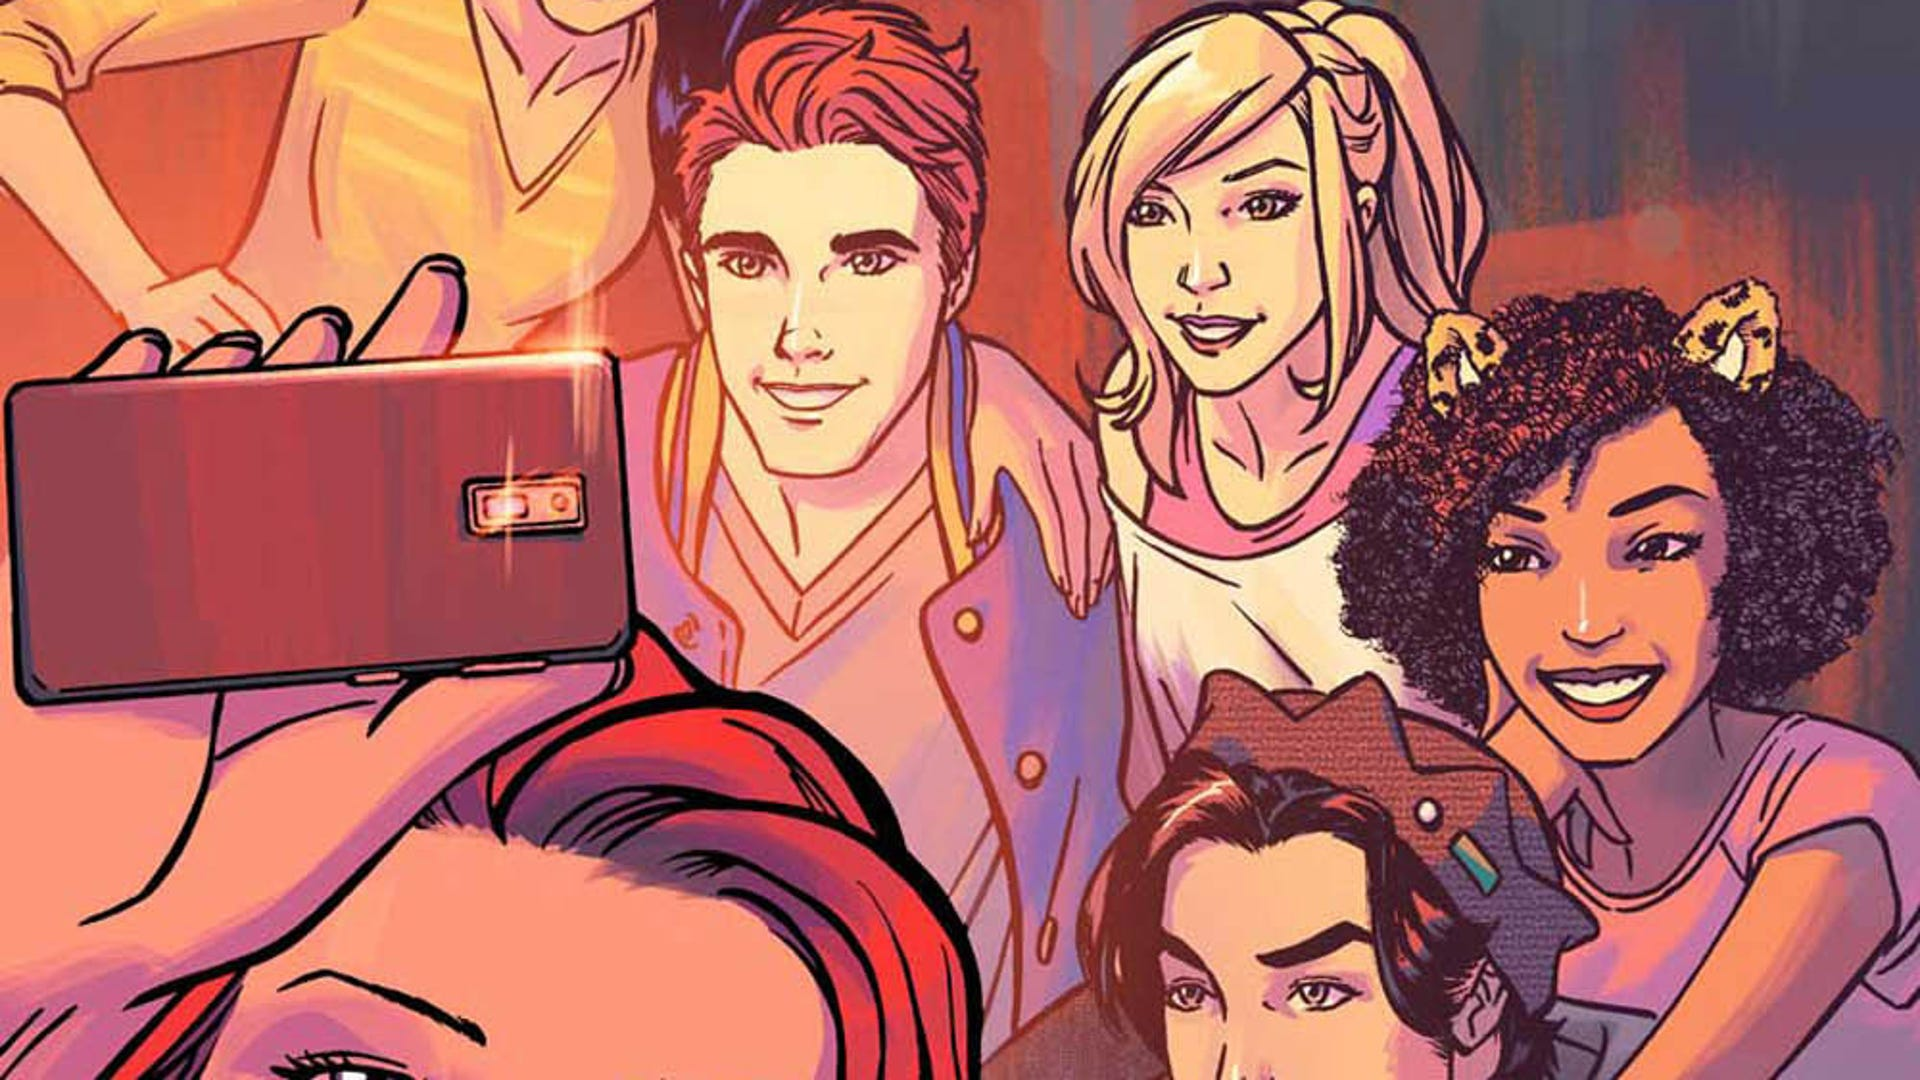 Riverdale One-Shot, art by Alitha Martinez with Steve Downer